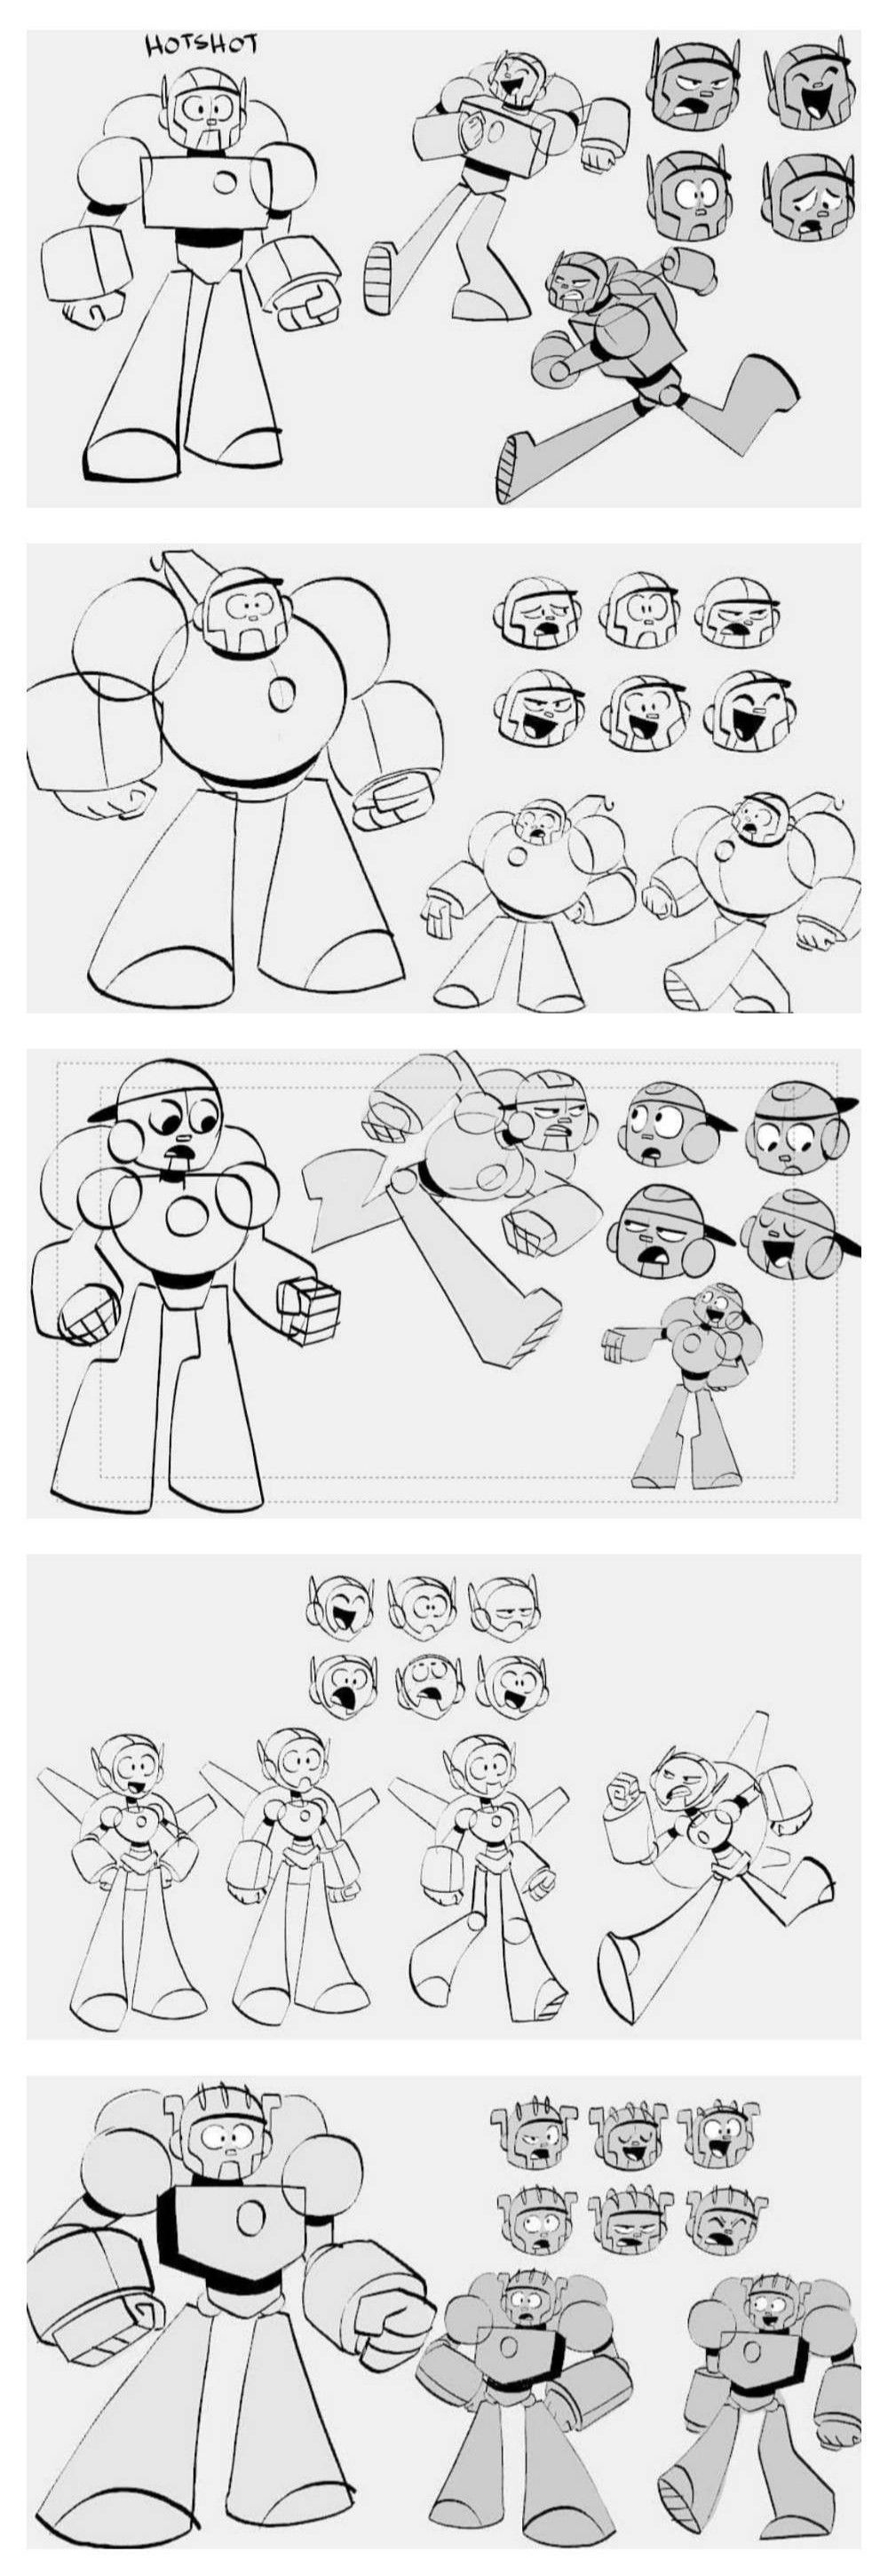 Storyboard Drawings By Estrela Lourenco Storyboard Revisionist For Hasbro Transformers Rescue Bots Transformers Art Storyboard Drawing